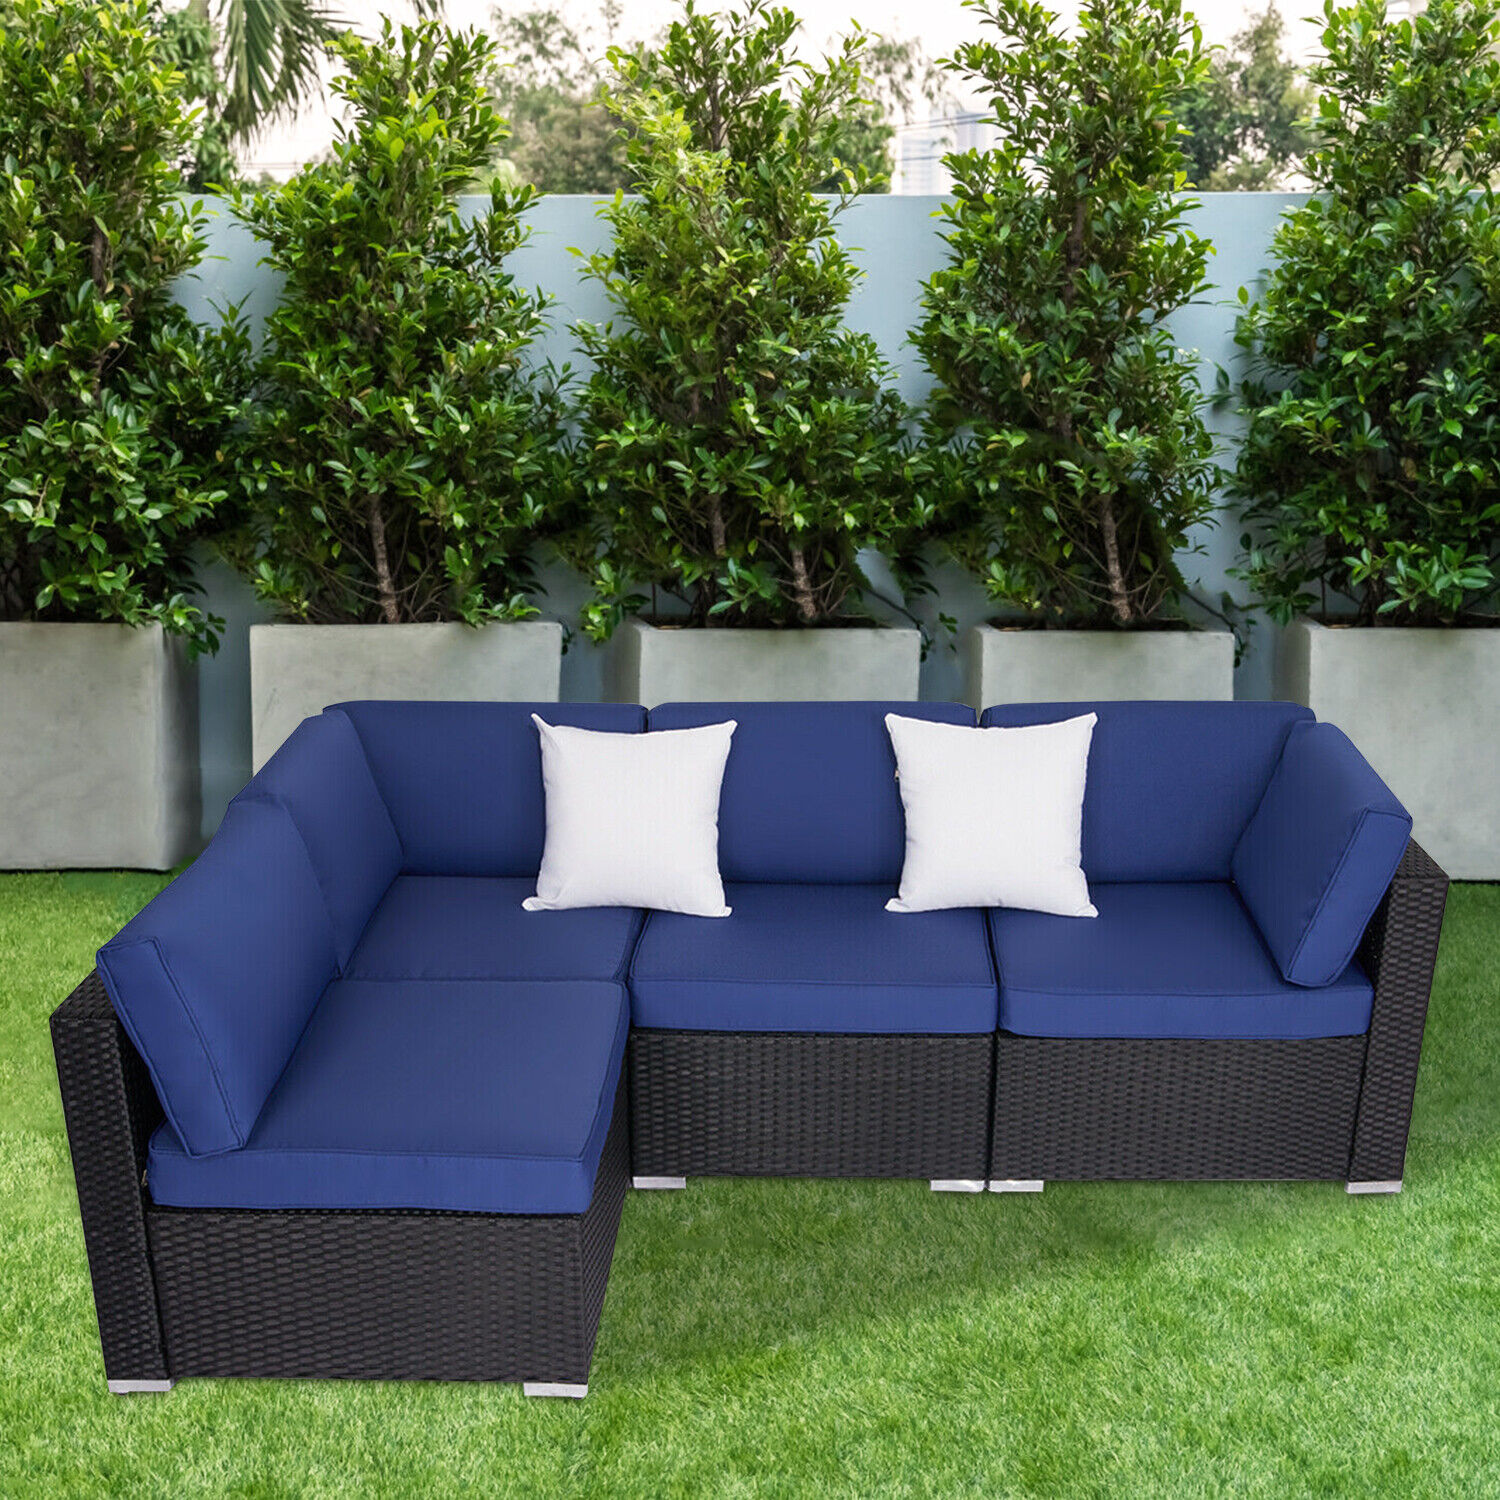 Garden Furniture - 4PC Outdoor Furniture Patio Rattan Wicker Sofa Set Cushioned Couch Seat Garden